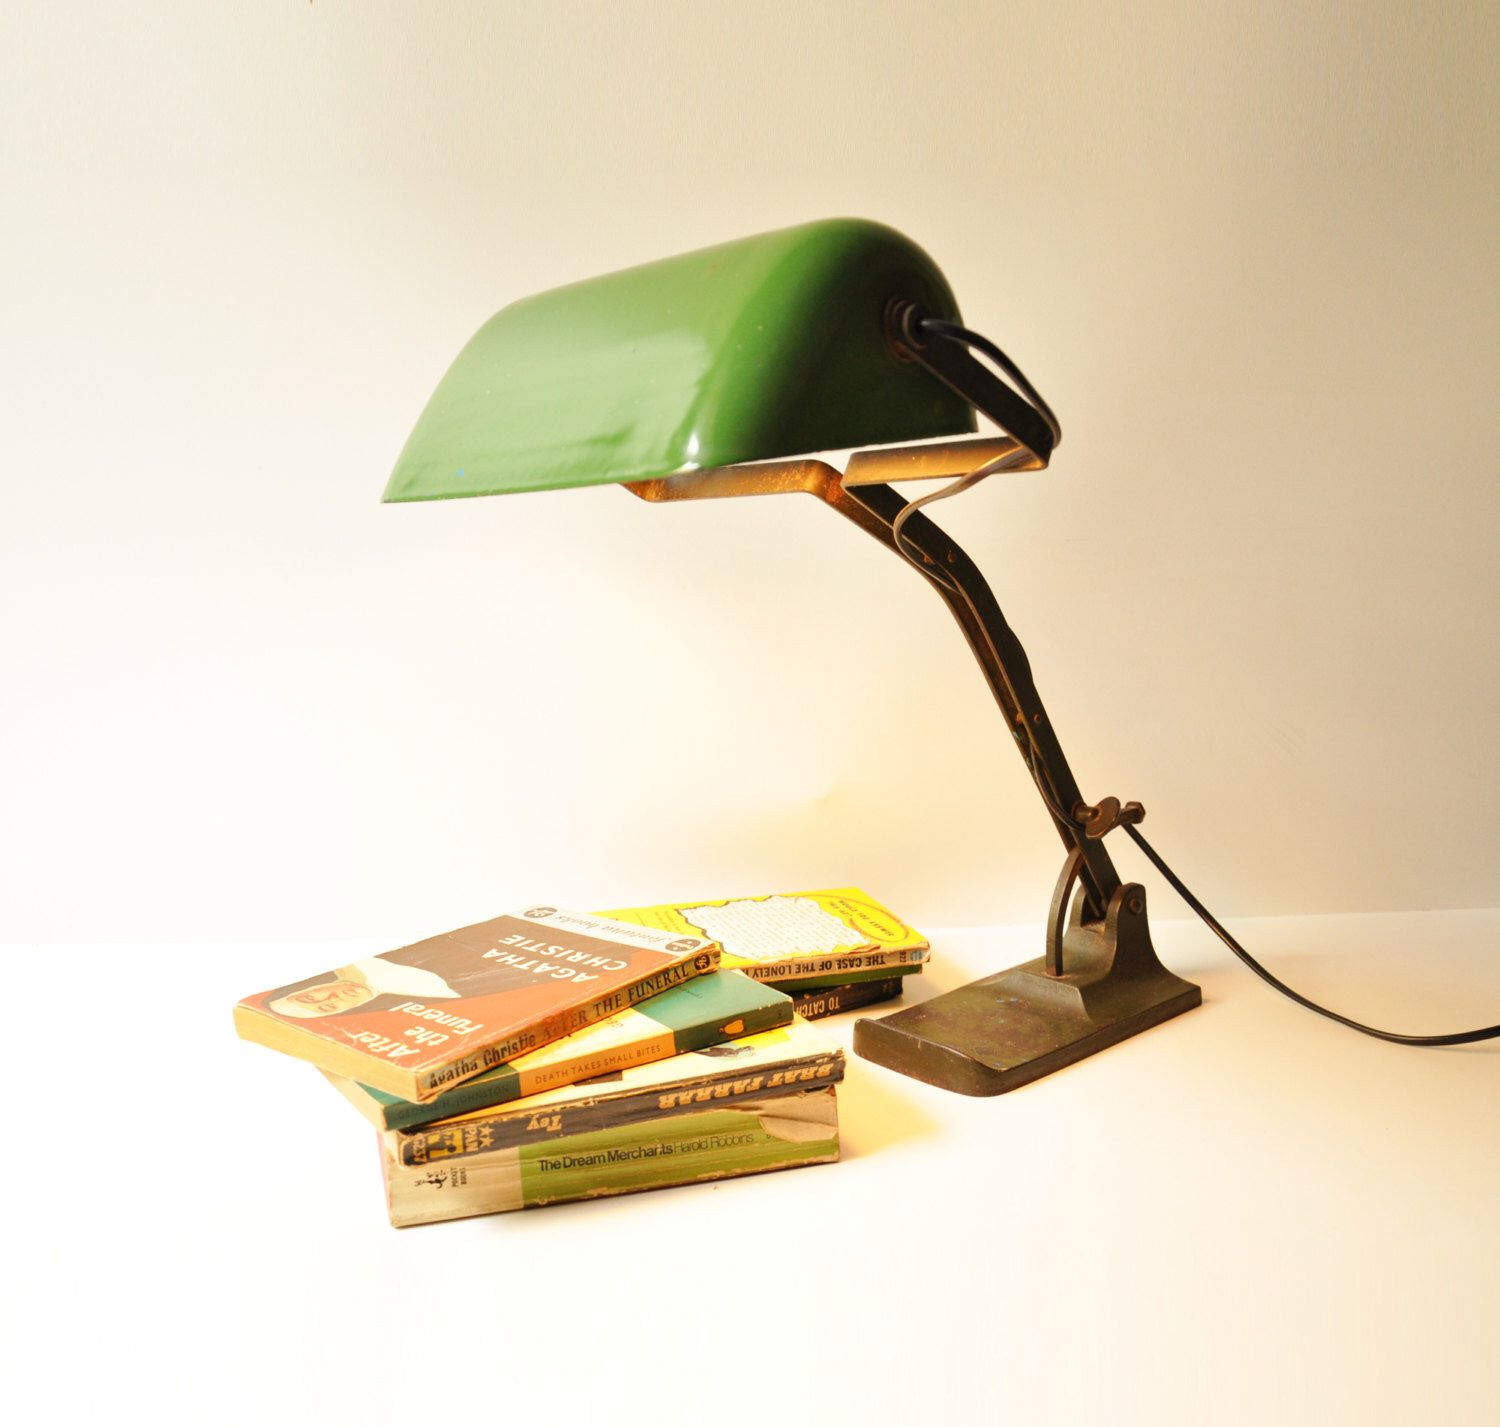 Vintage bankers desk lamp - Antique Banker S Desk Lamp Art Deco Library Light Green Enamel Shade